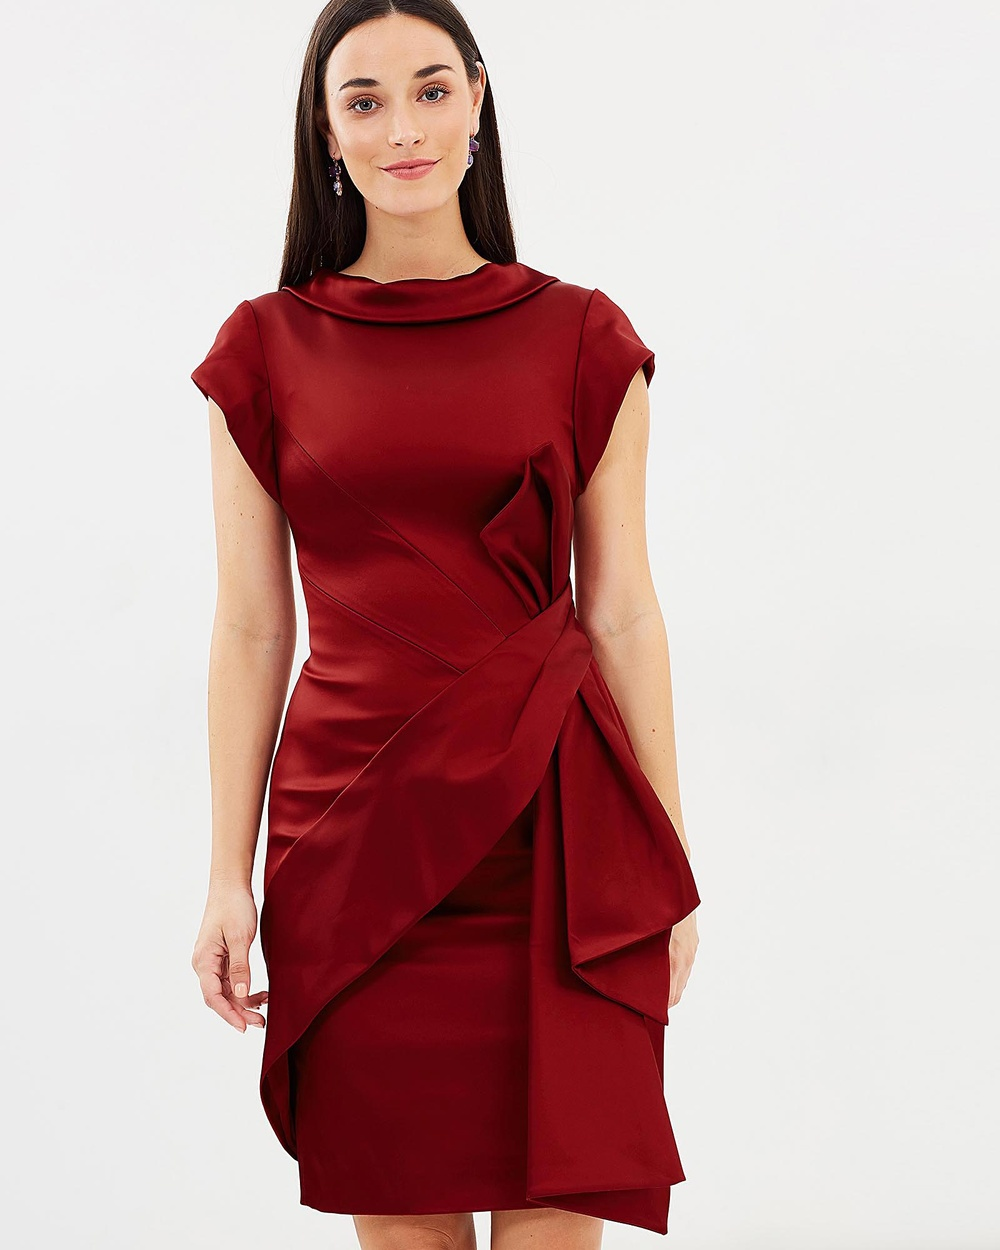 6695ed13f0e Karen Millen Satin Fold Mini Dress Dresses Dark Red Satin Fold Mini Dress